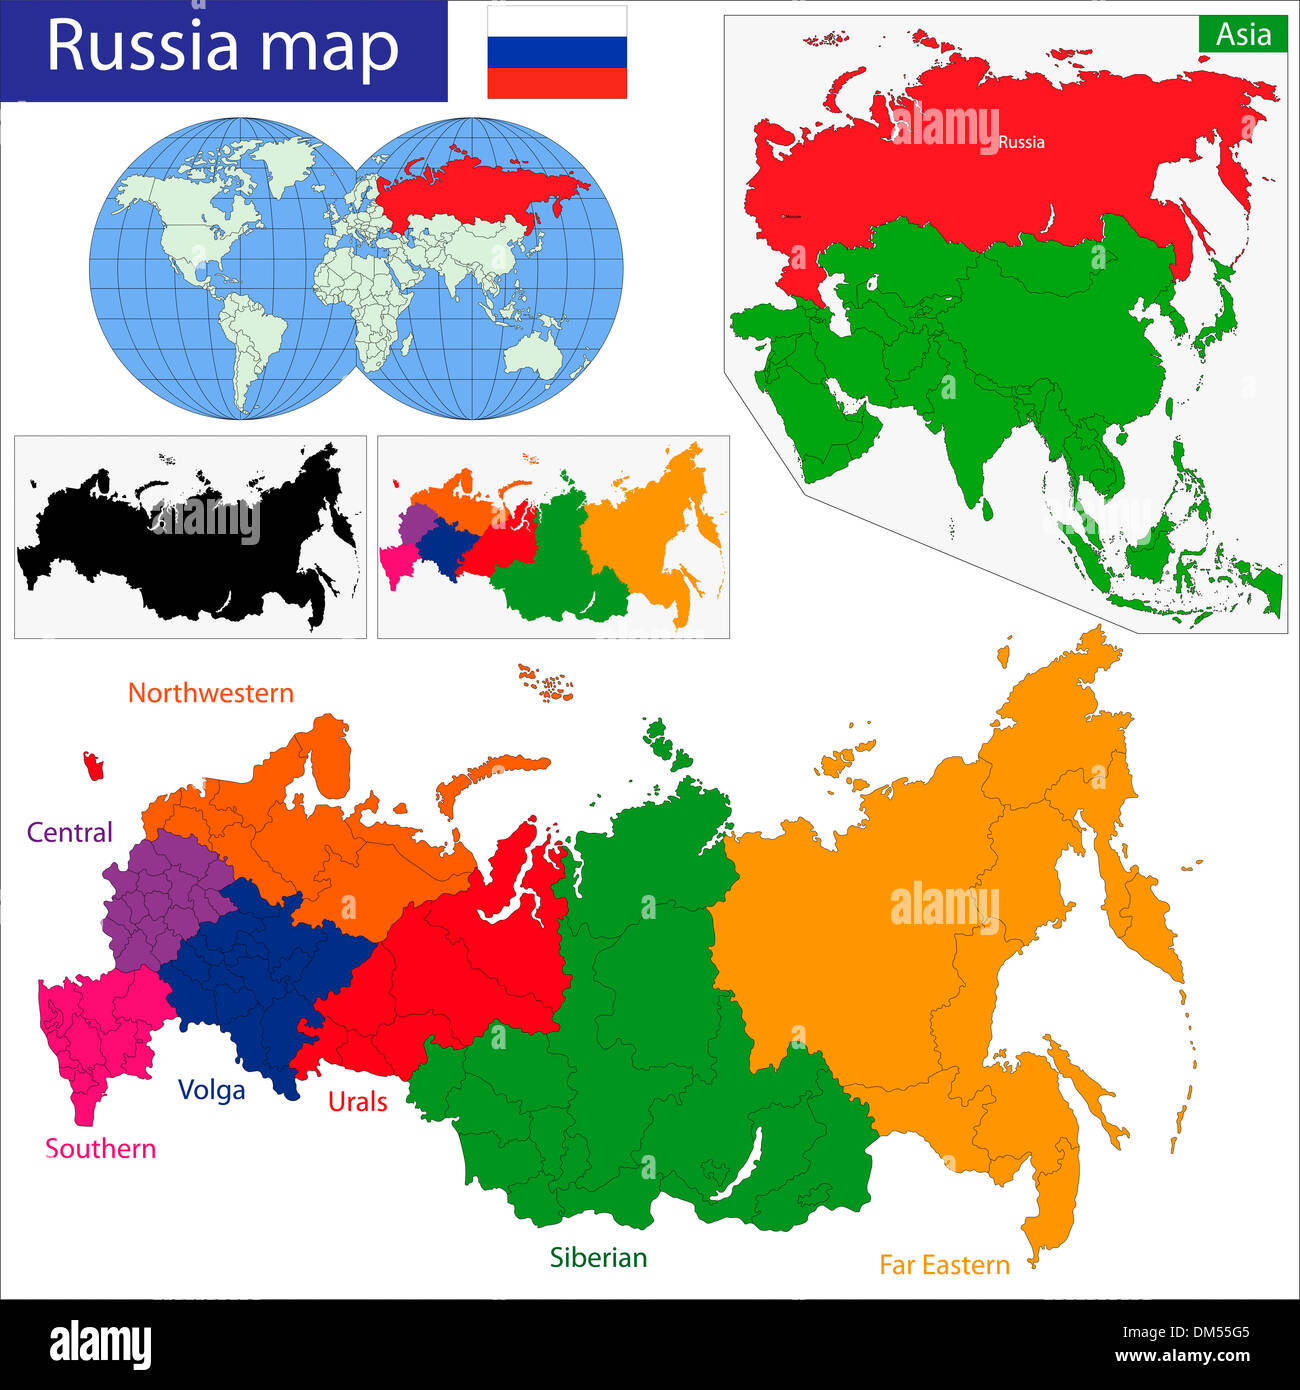 Russia map - Stock Image